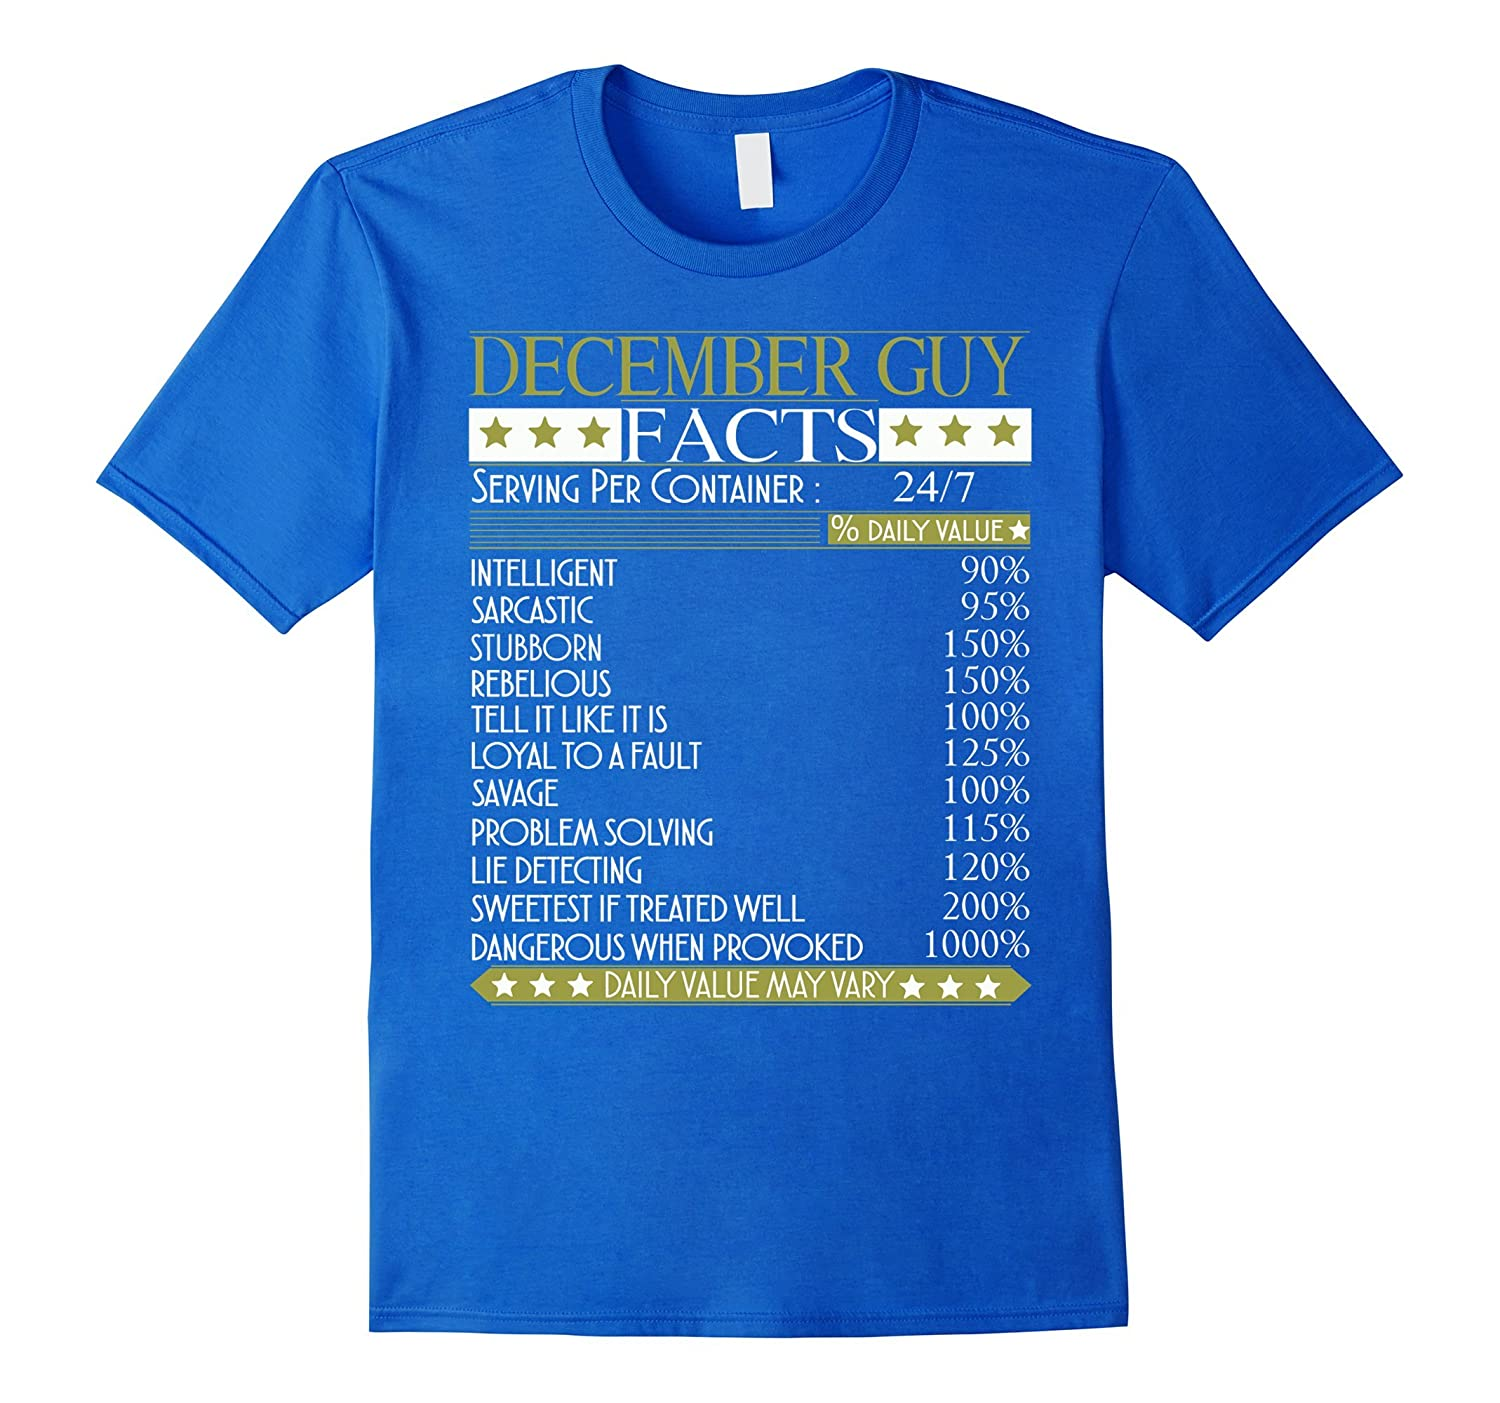 December Guy Facts T Shirt Funny Birthday Gift For Guys ANZ